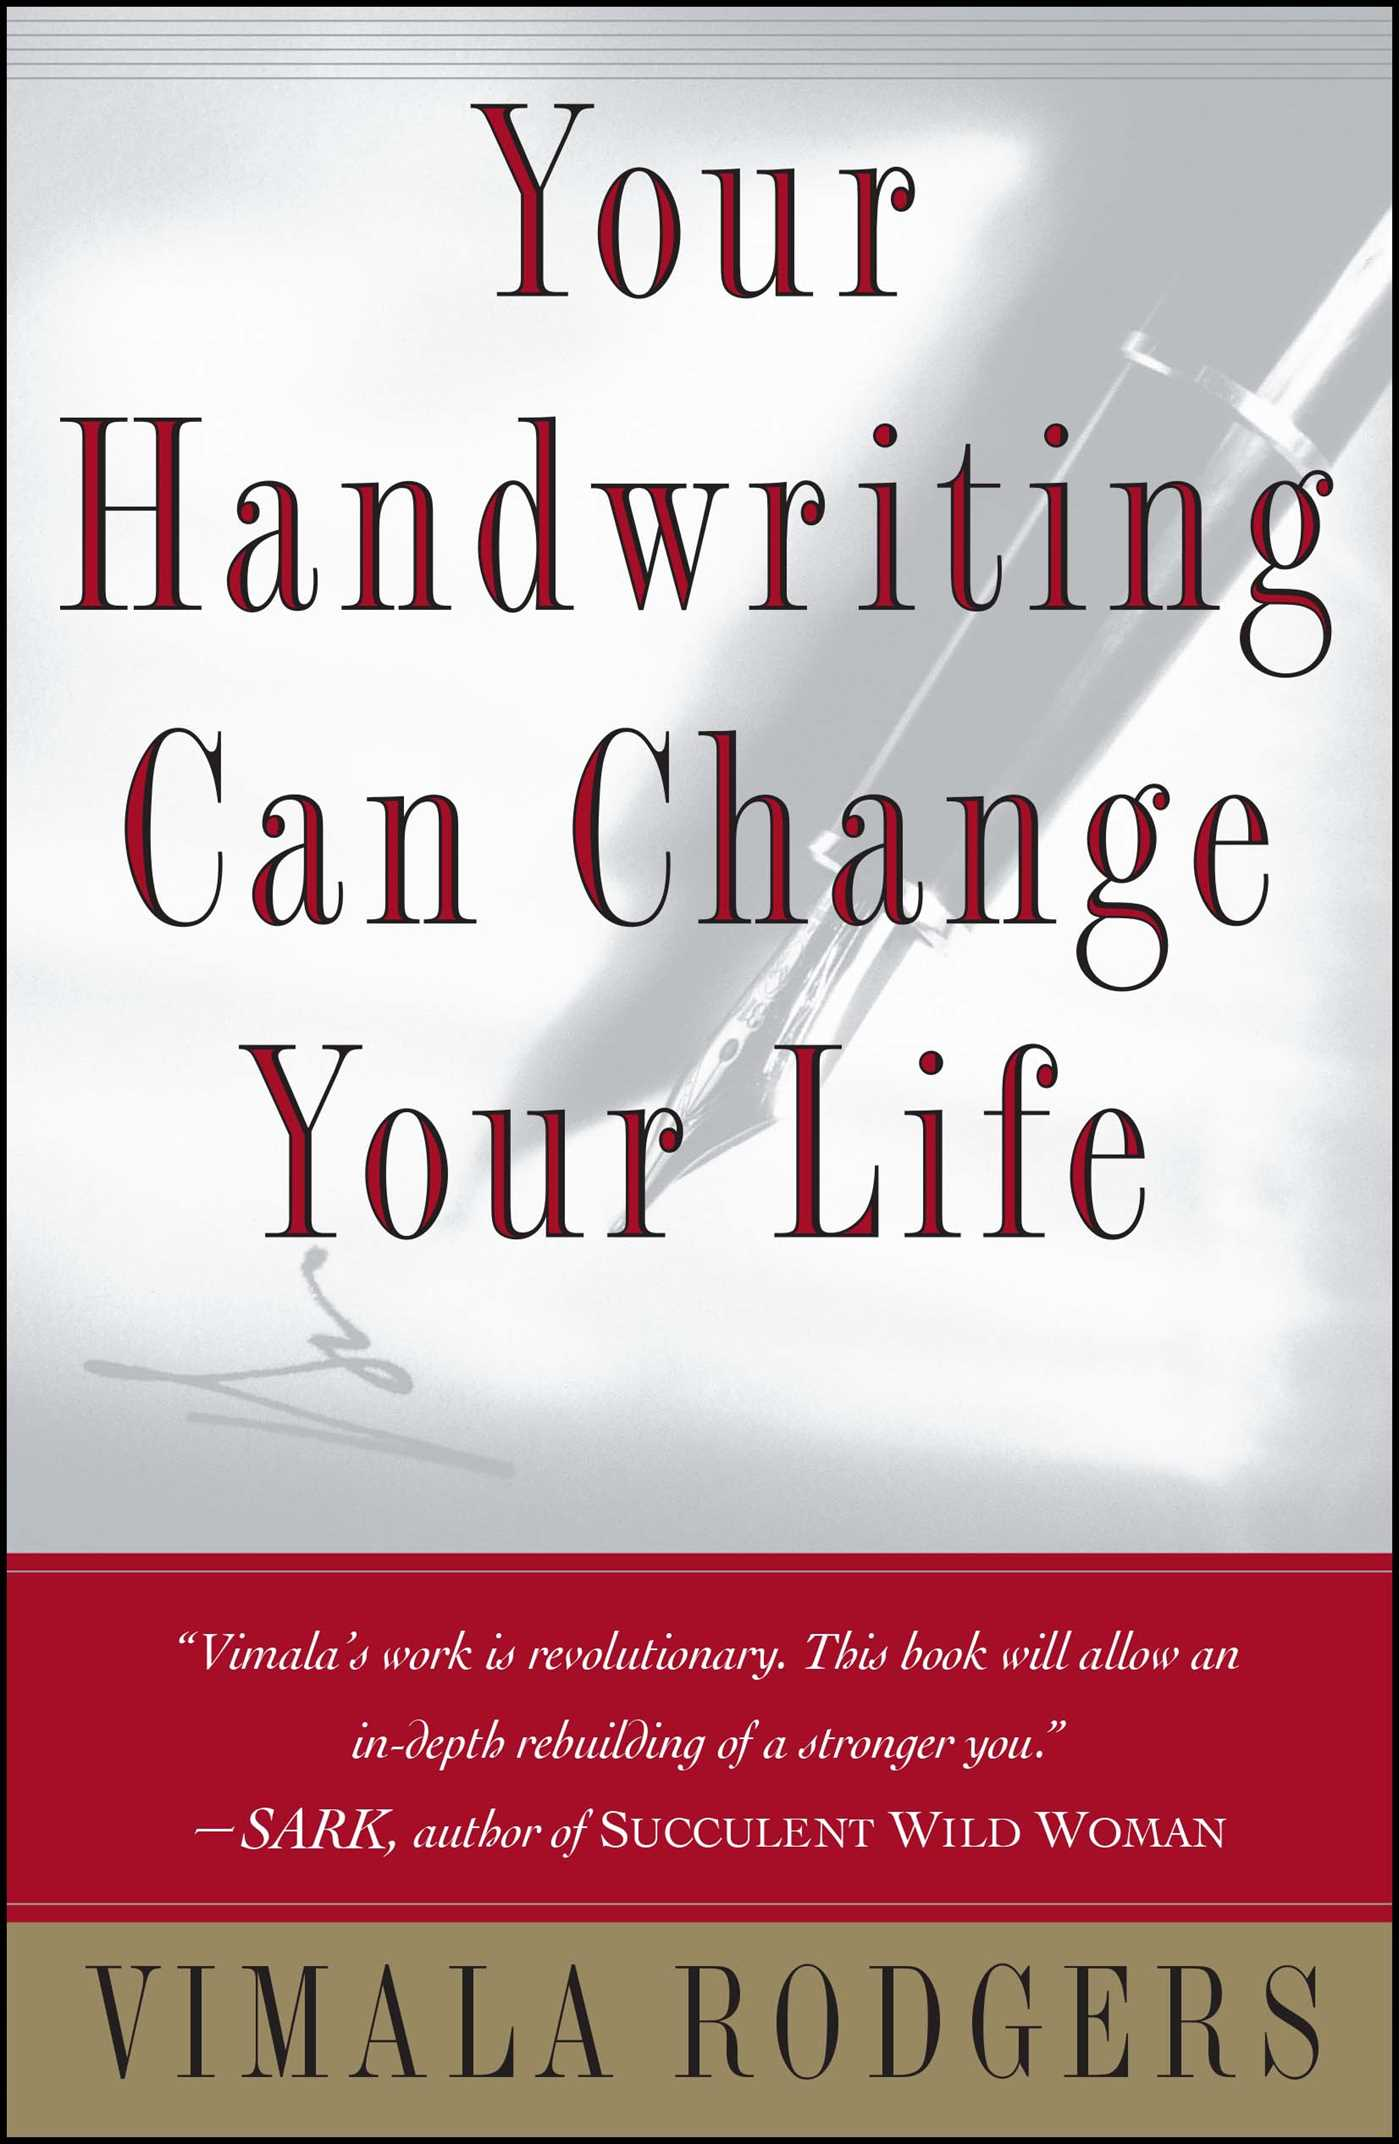 Your-handwriting-can-change-your-life-9780684865416_hr